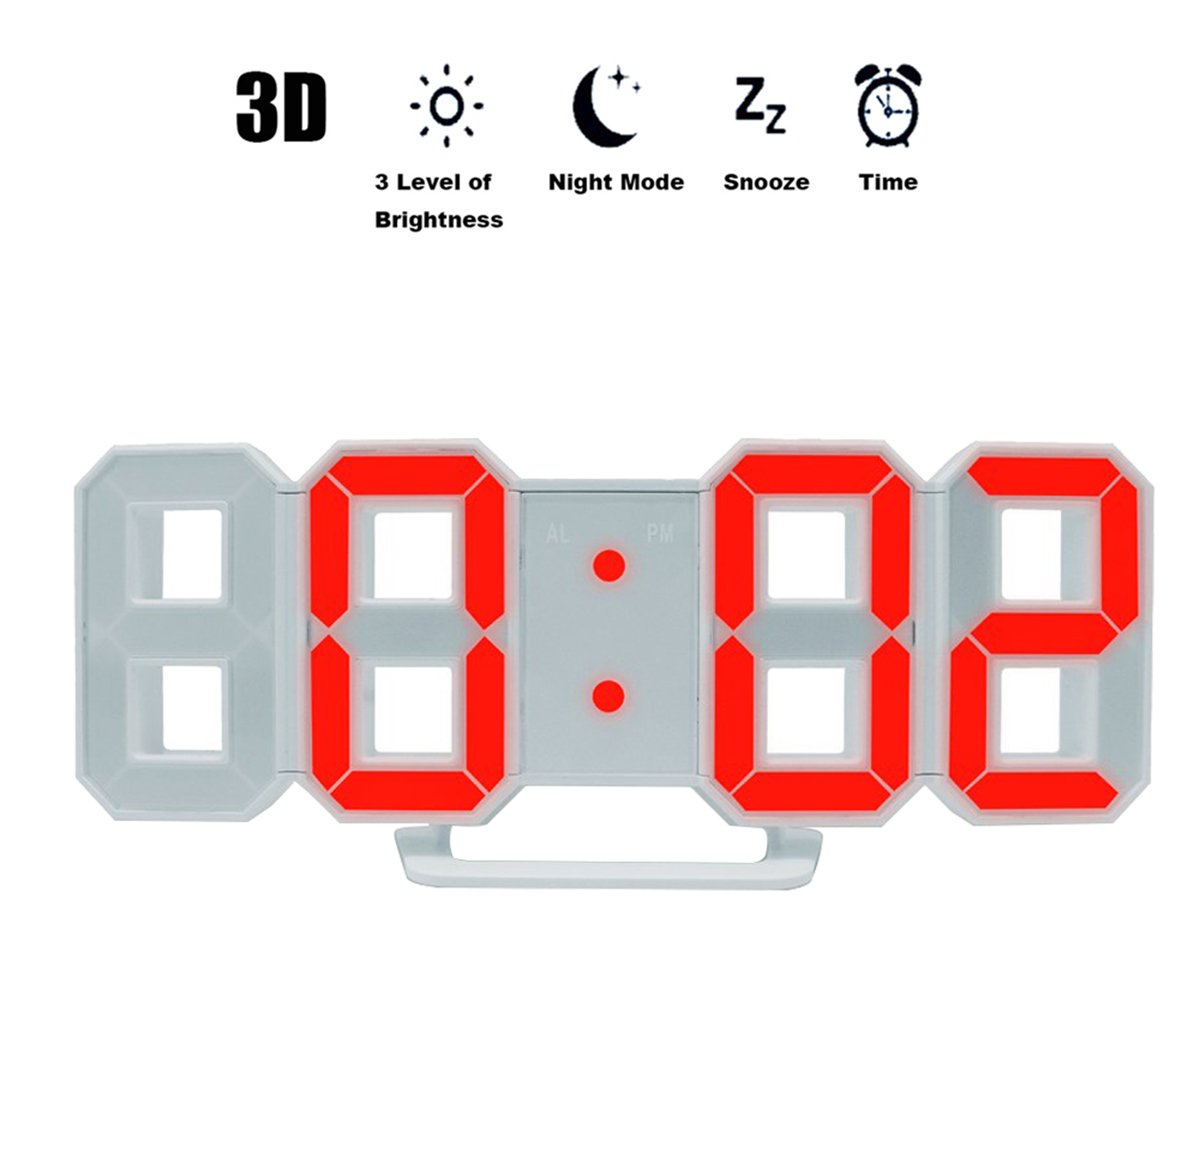 Enjoy Best Time Digital Jumbo 3D LED Wall Snooze Alarm Clock for Office with Three Levels of Brightness -Cool Home Night Light Luminious Time Clock(Blue)